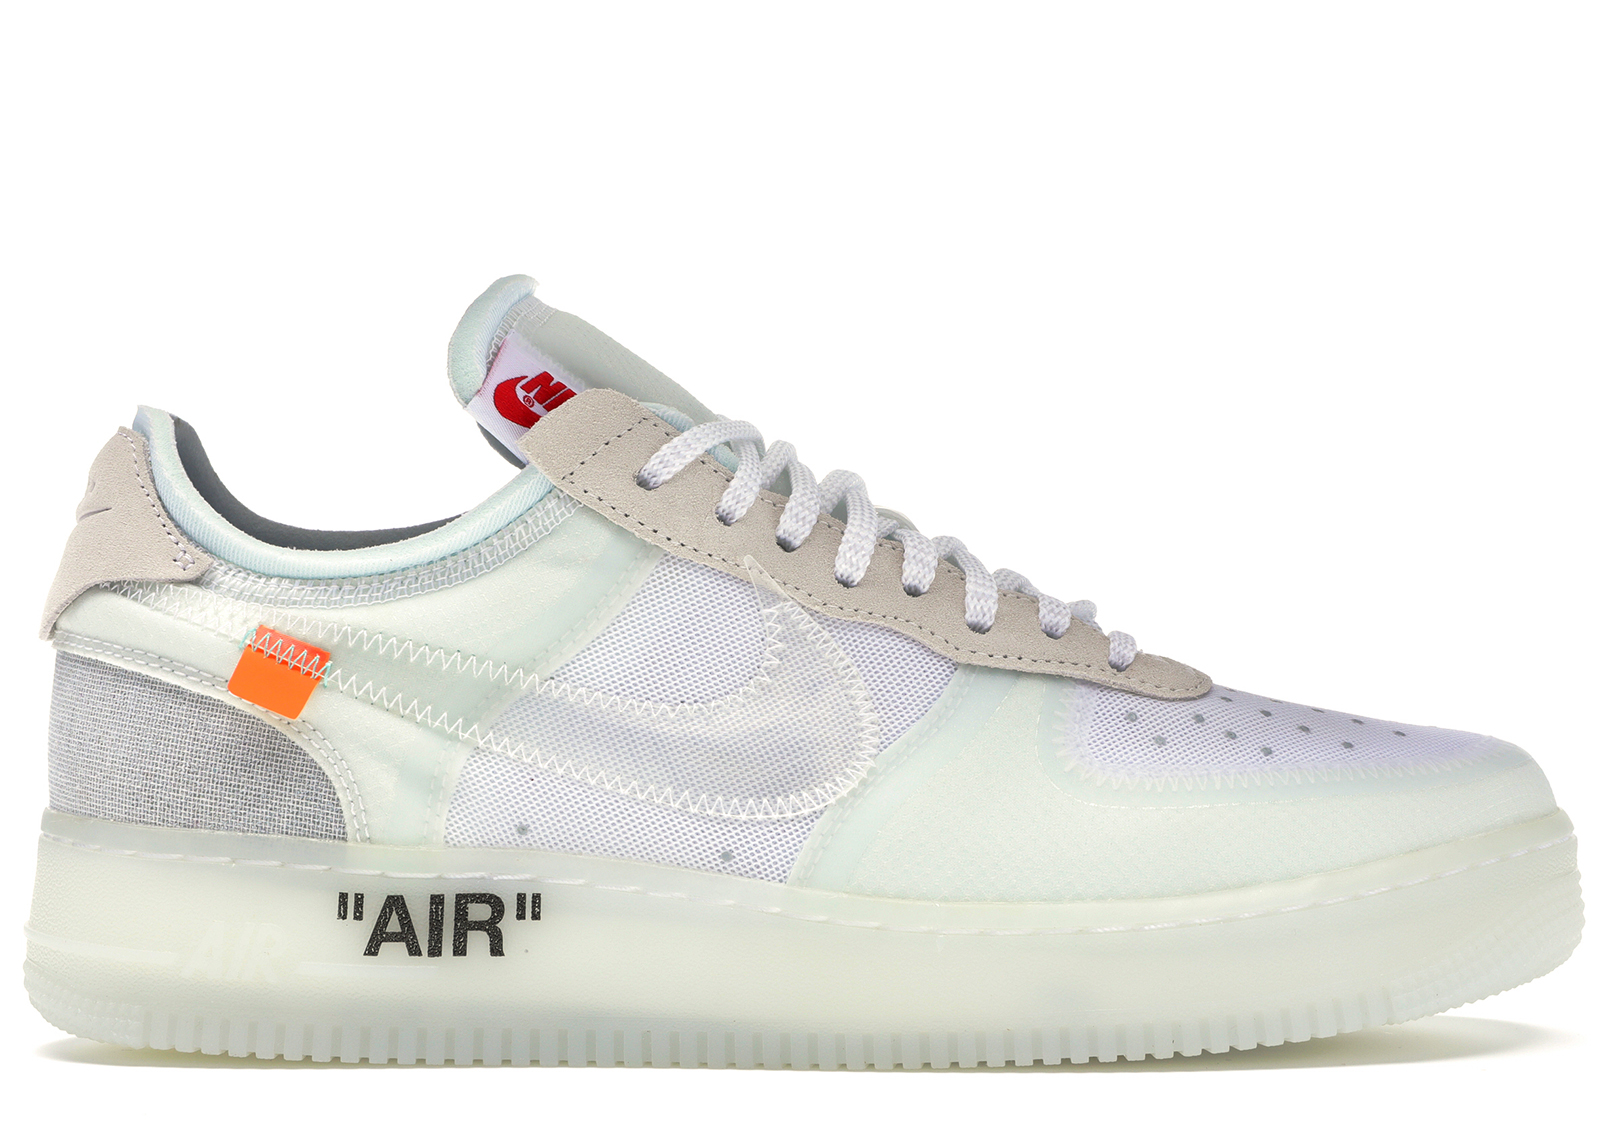 air force 1 air